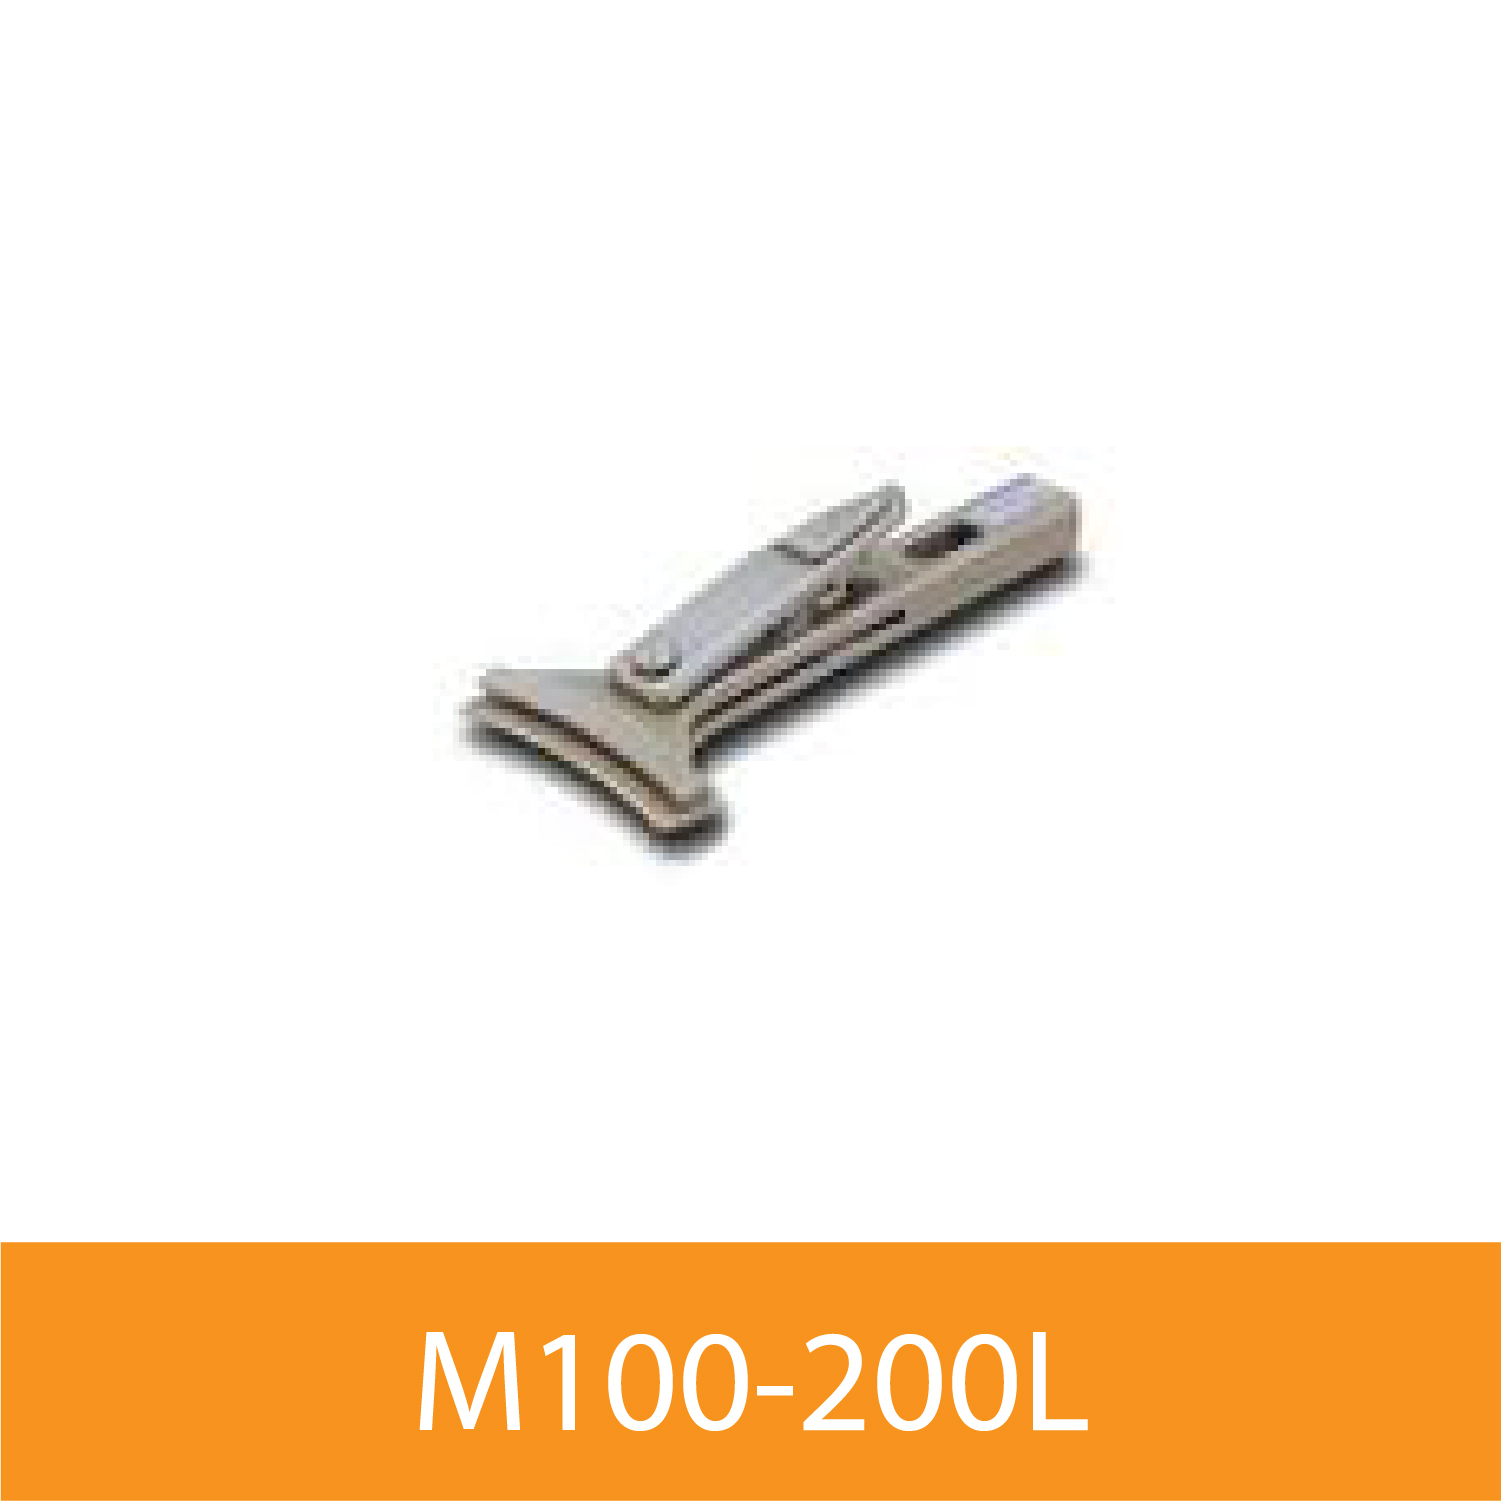 Wafer Tweezer (M100-200L)